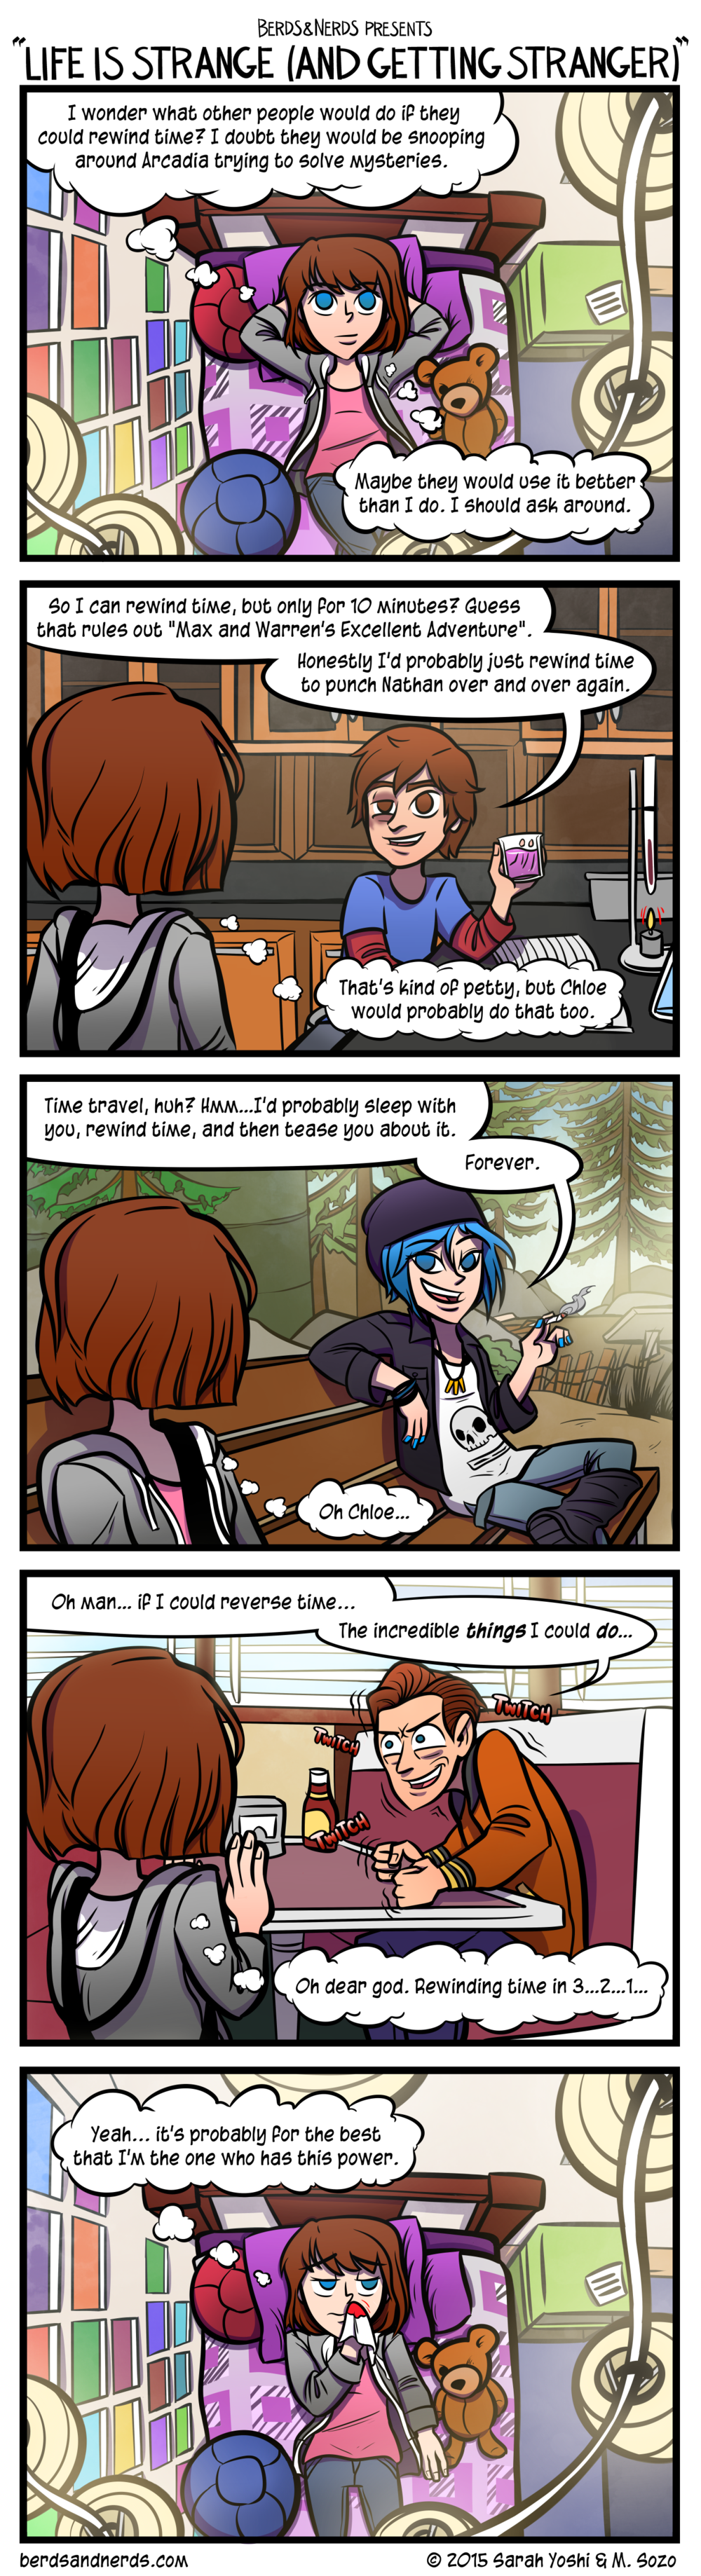 220LifeIsStrange(AndGettingStranger).png